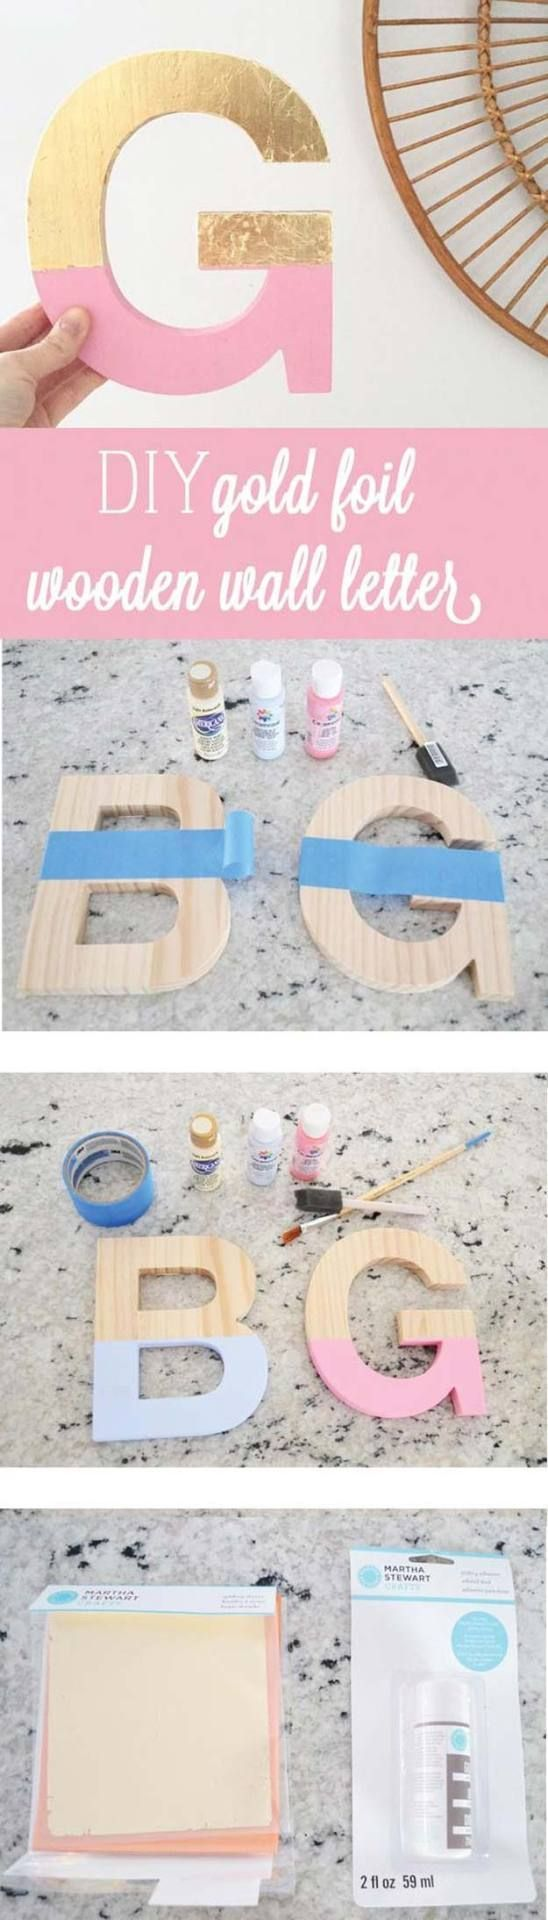 Pink diy room decor ideas diy gold foil letter art cool pink